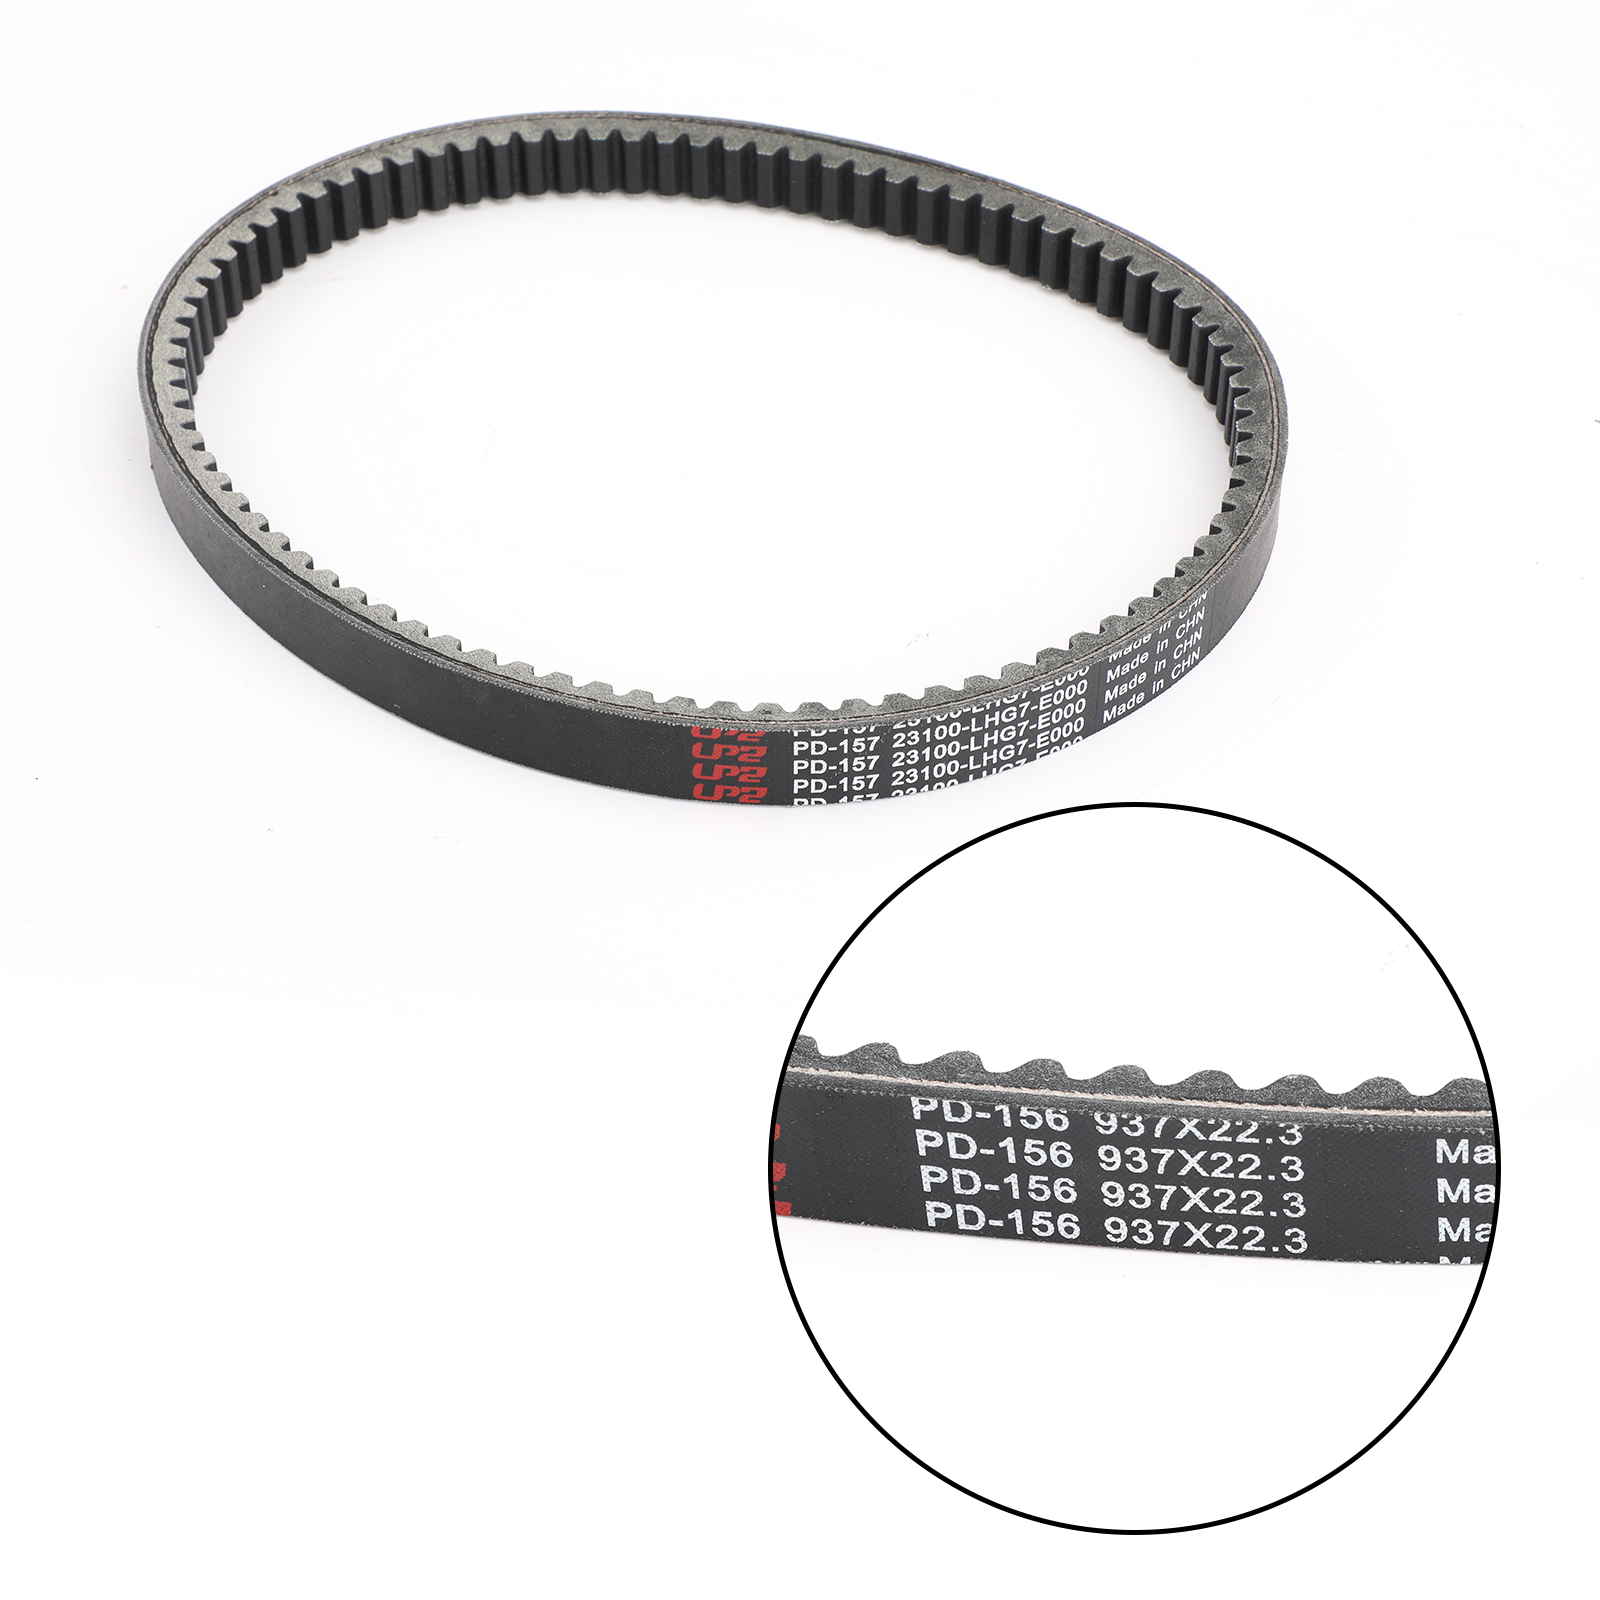 Areyourshop Motorcycle Drive Belt 920OC x 23W For <font><b>Kymco</b></font> <font><b>Grand</b></font> <font><b>Dink</b></font> <font><b>300</b></font> 12-17 Yager <font><b>300</b></font> 14-16 Scooter motorcycle accessorie image